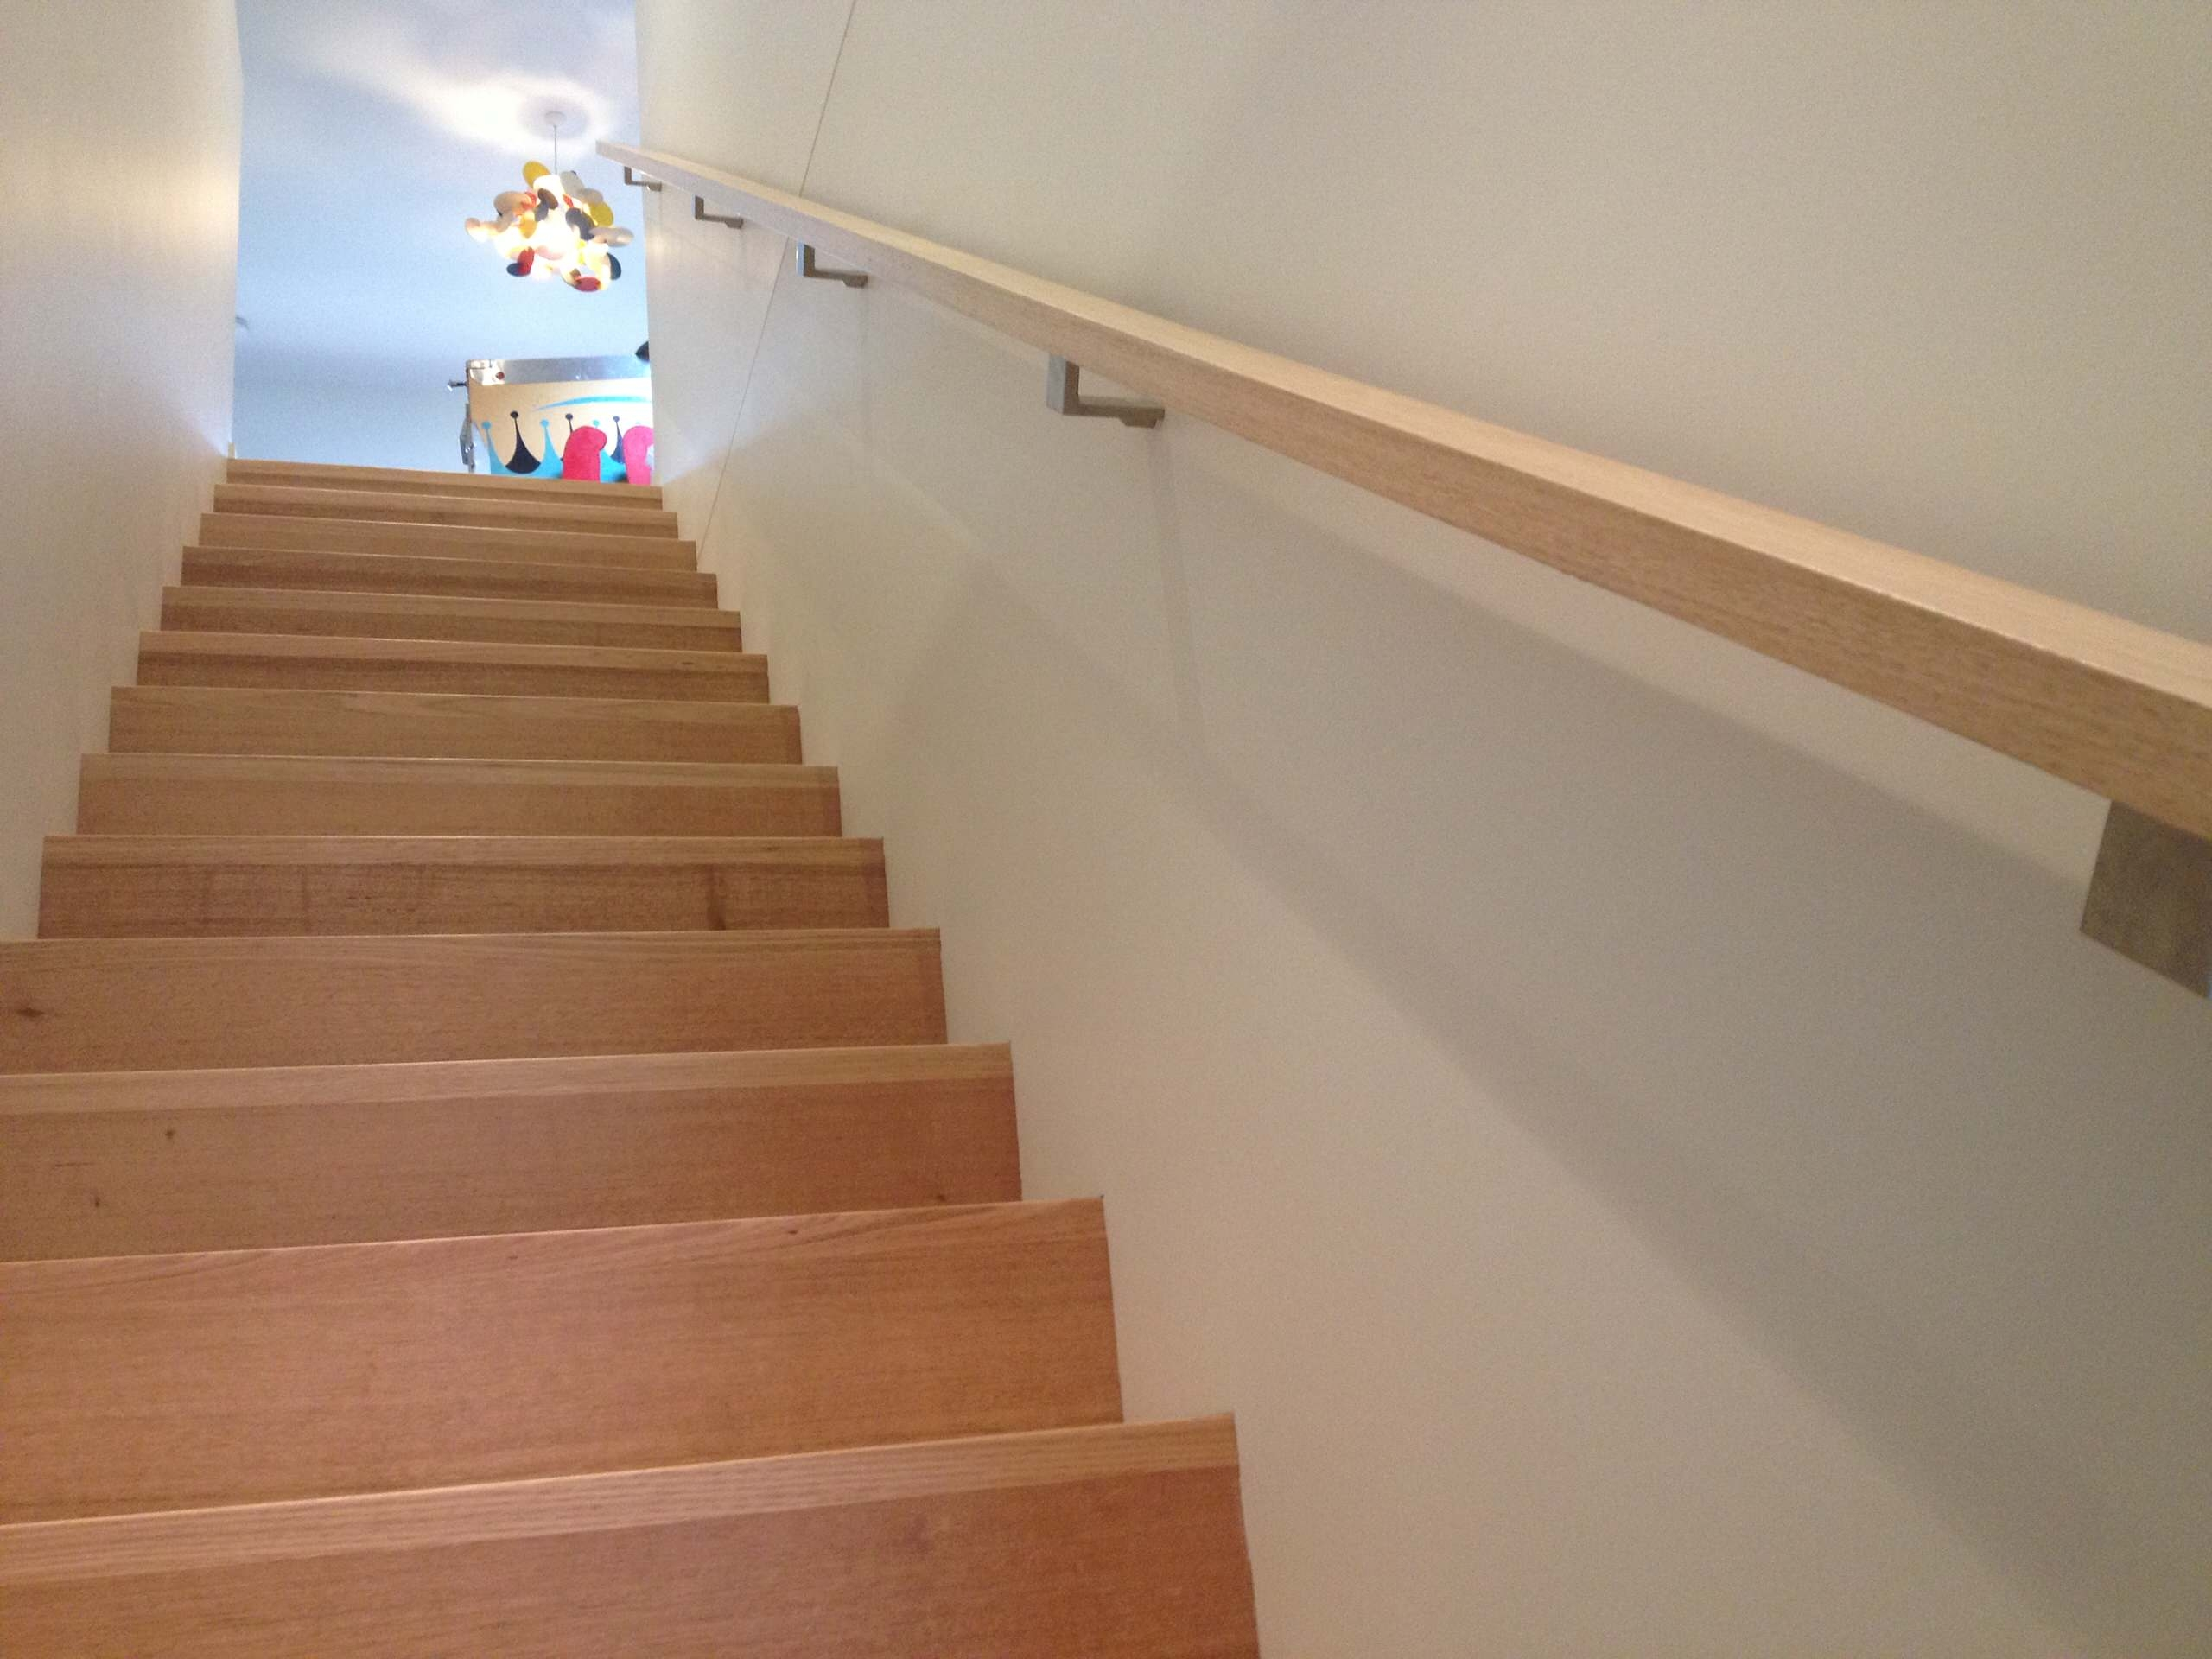 Wall Mounted Handrail Contemporary Houzz | Wall Mounted Handrails Wood | Stair Handrail Bracket | Capozzoli Stairworks | Stair Parts | Wood Staircase Handrail | Wrought Iron